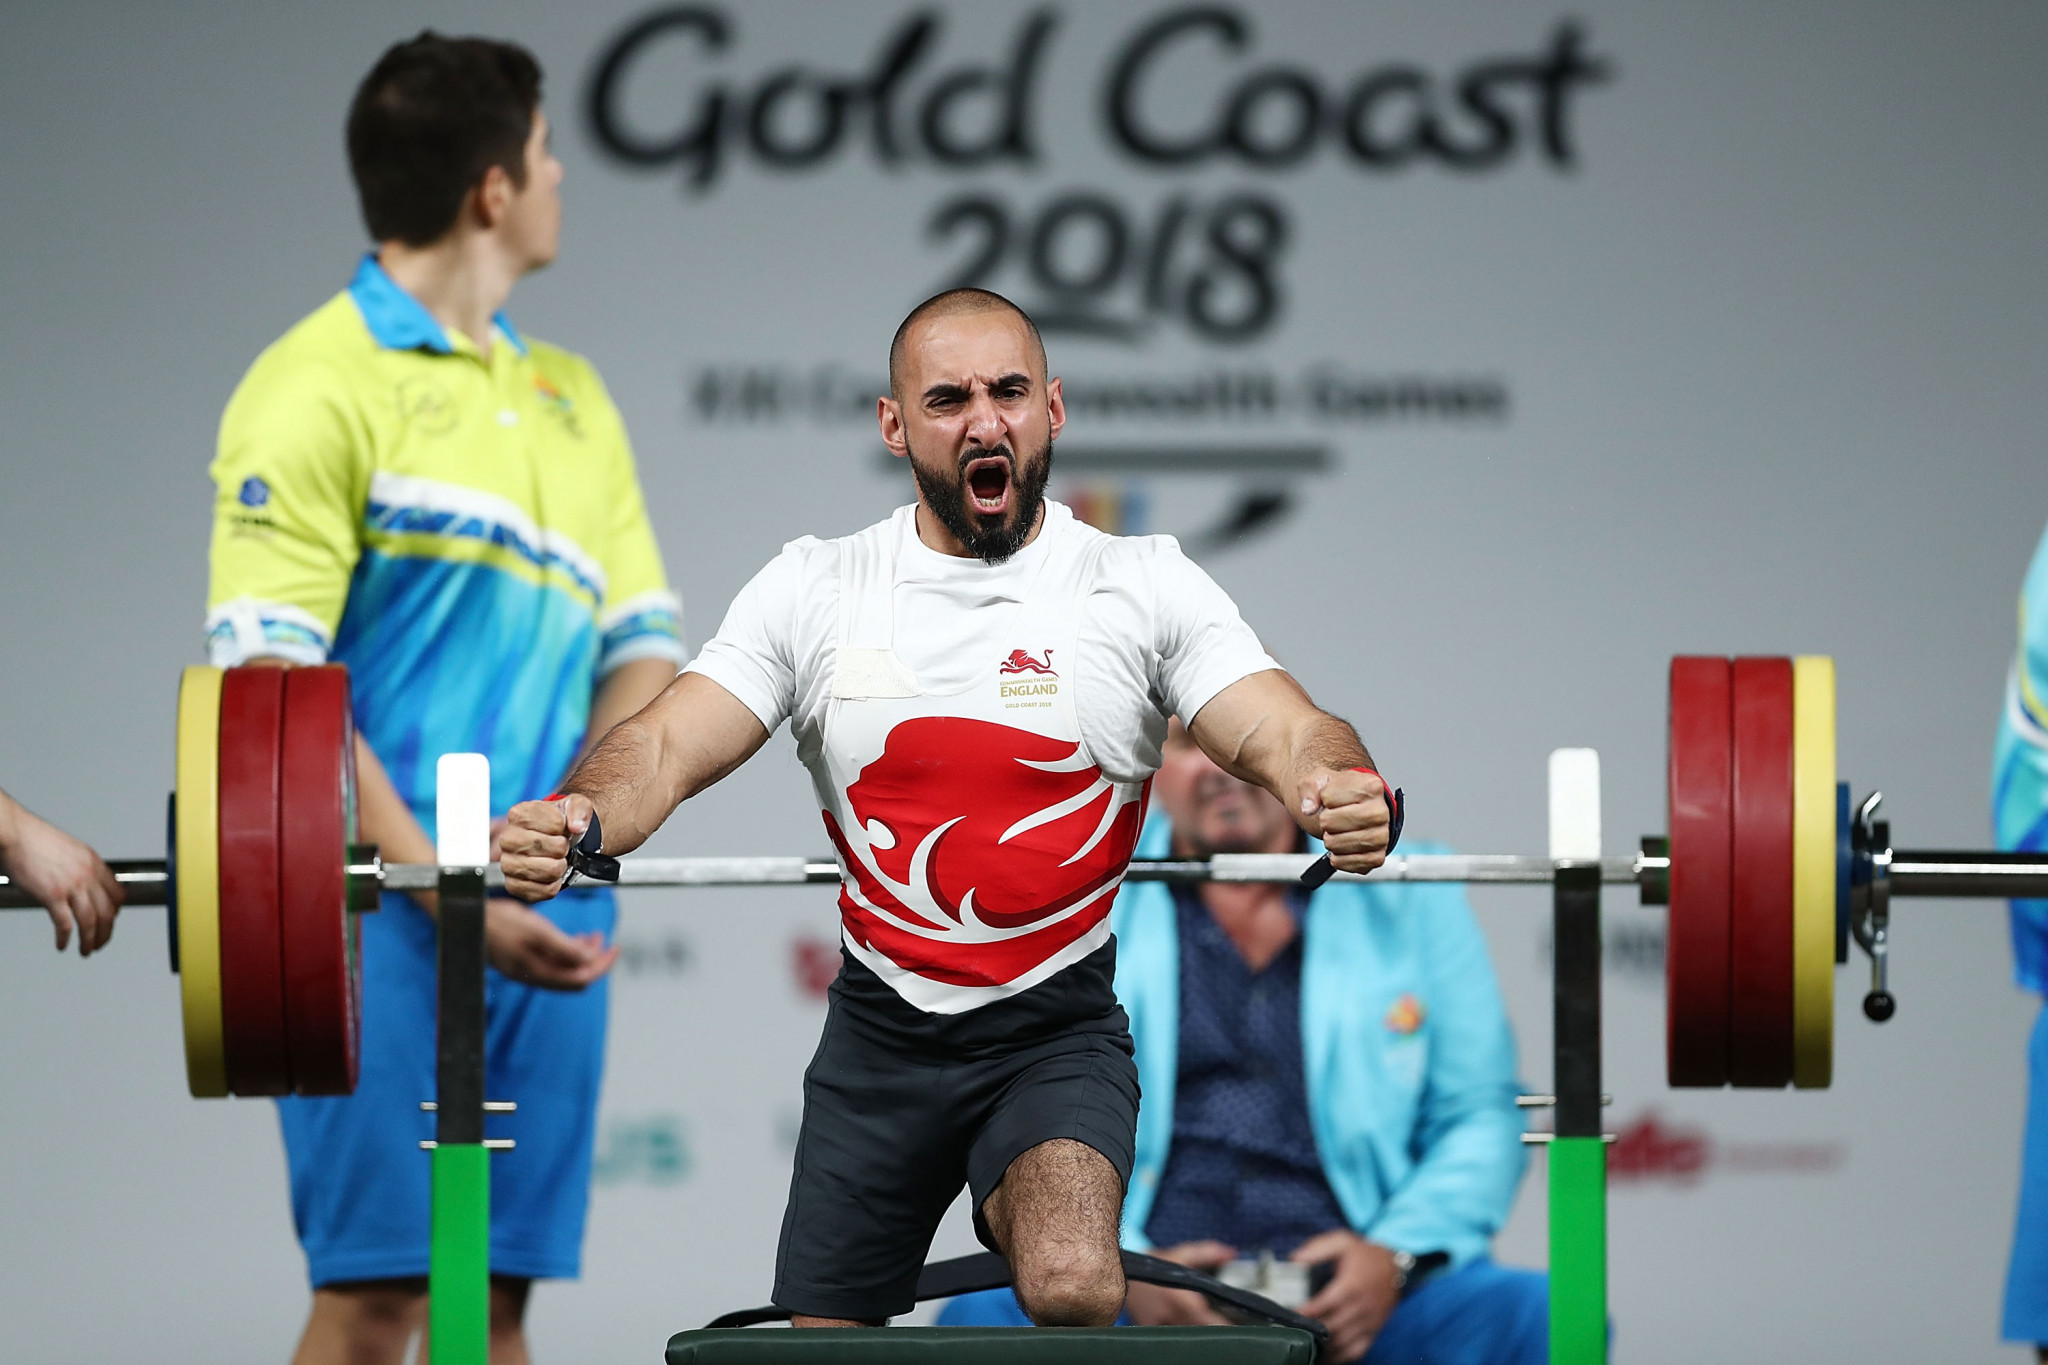 British Paralympic powerlifter Ali Jawad claimed WADA's credibility was in tatters ©Getty Images